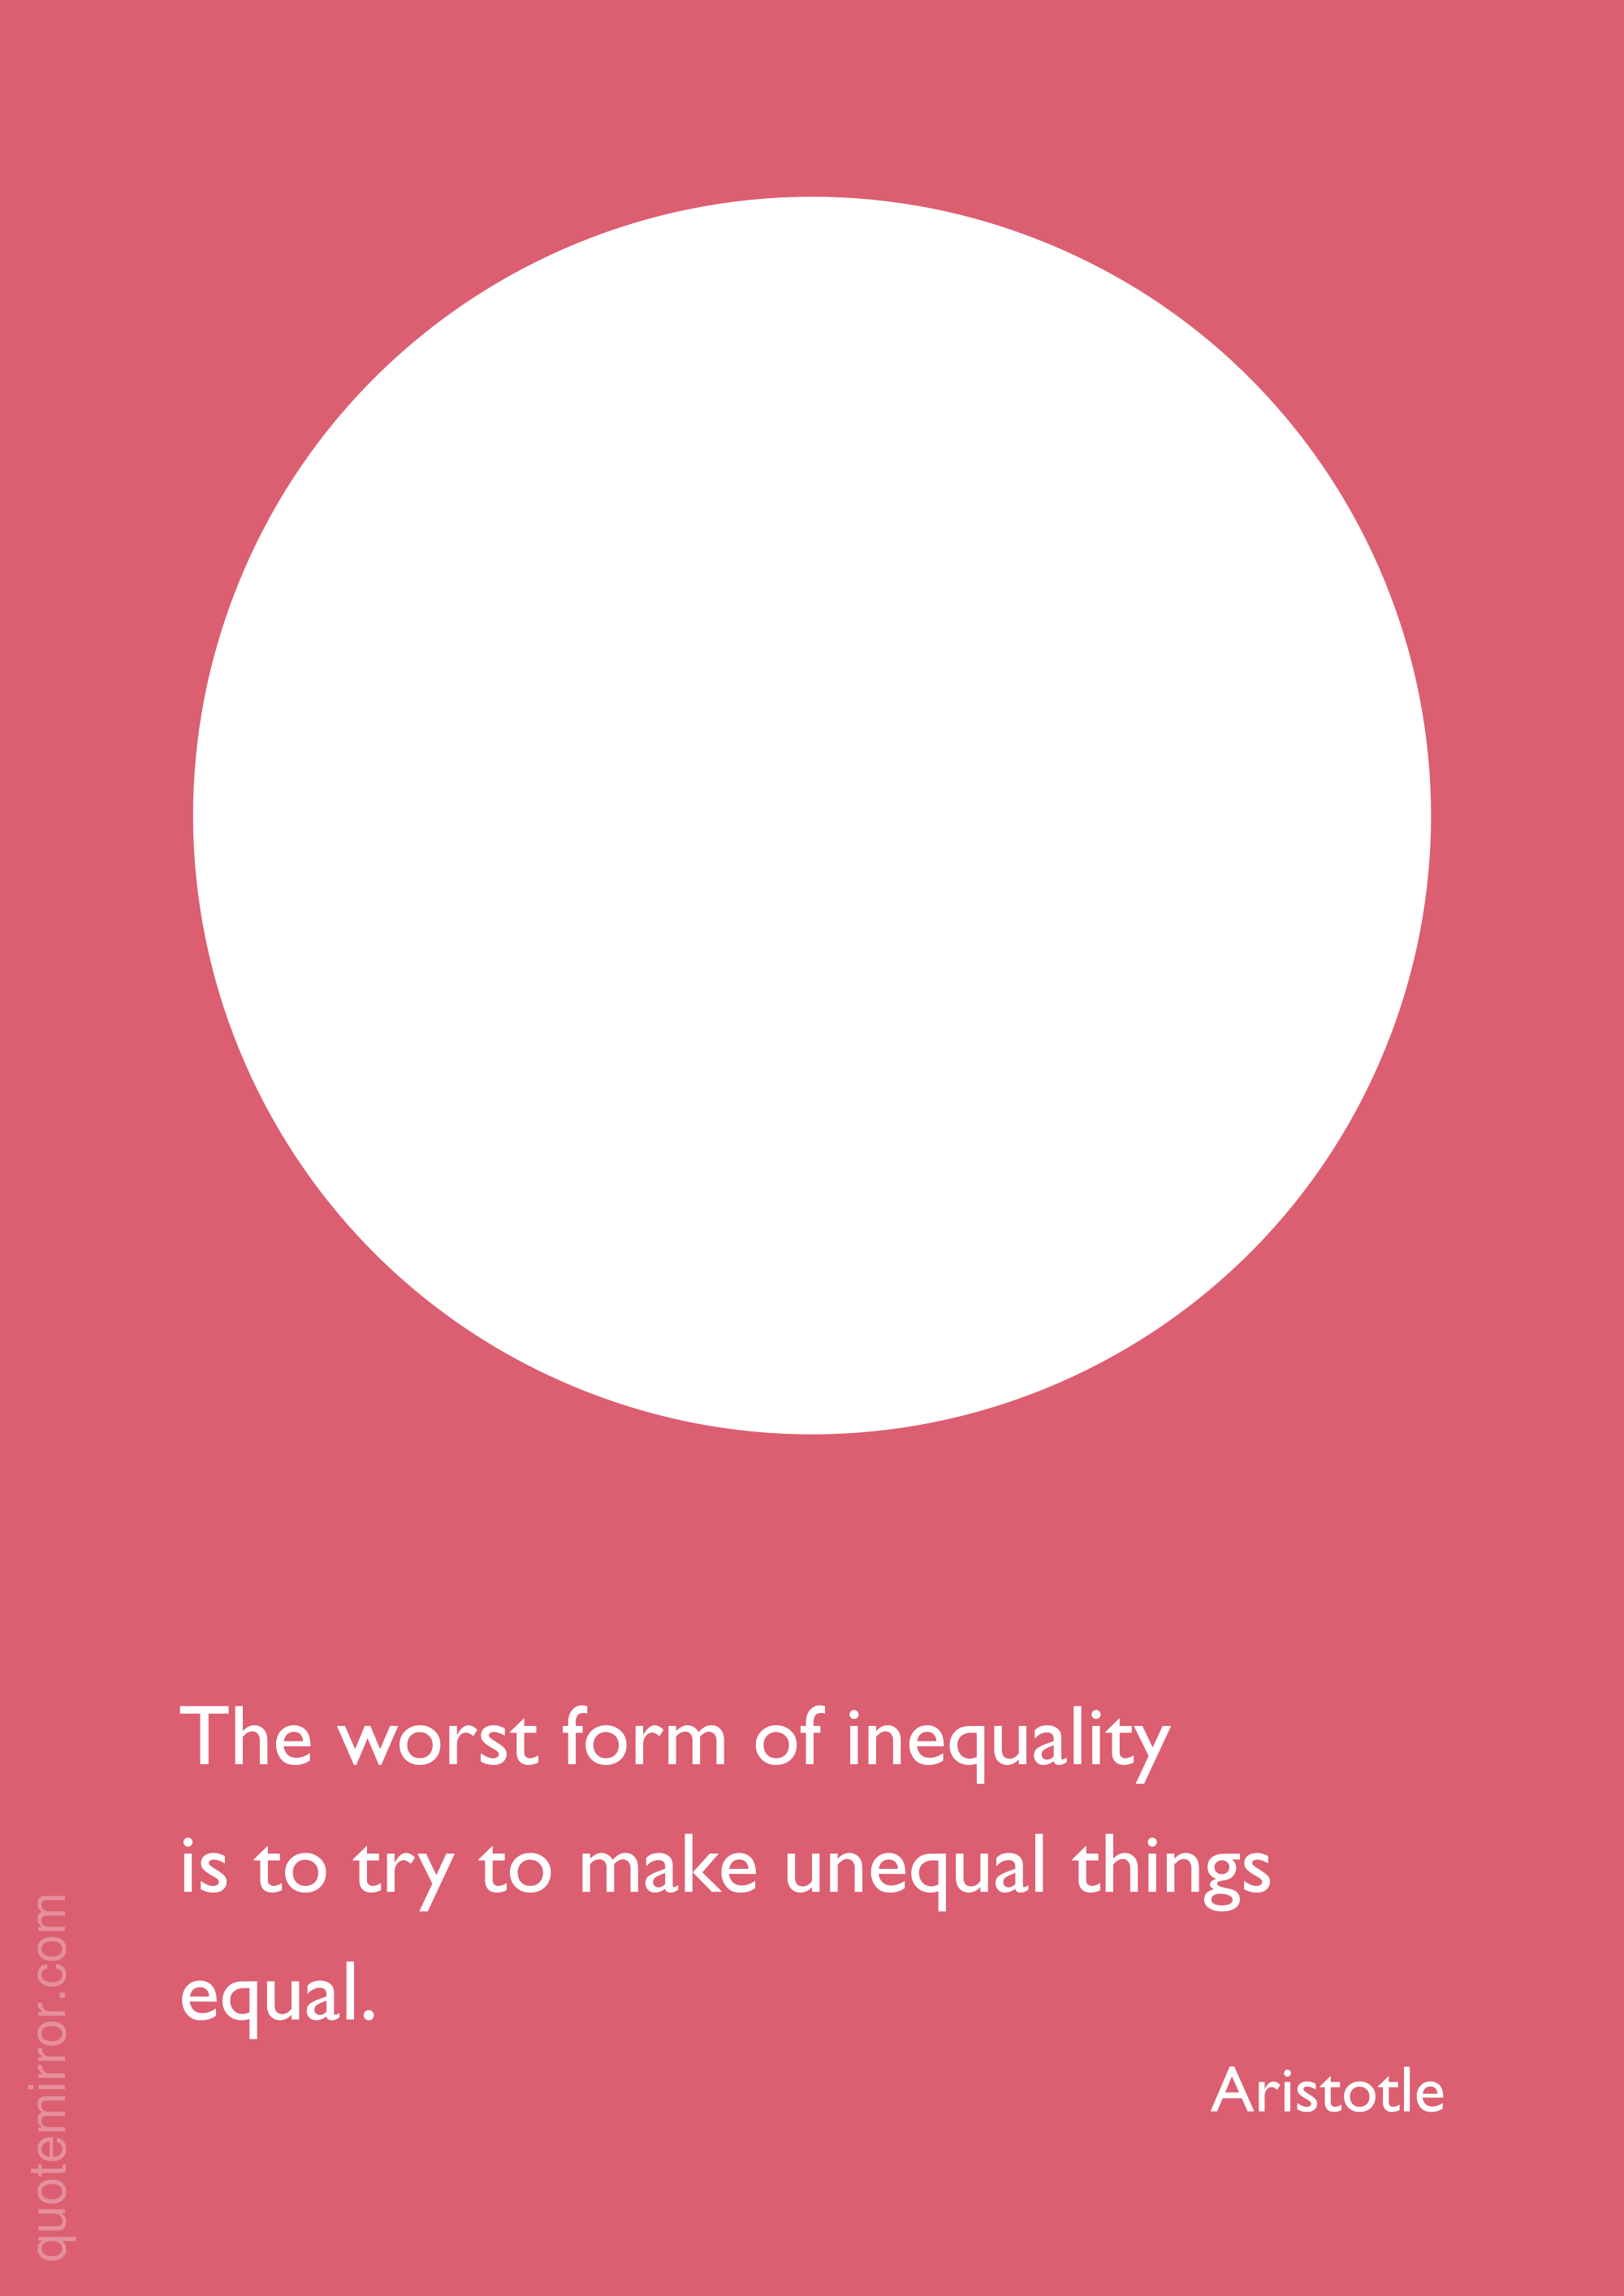 The Worst Form Of Inequality